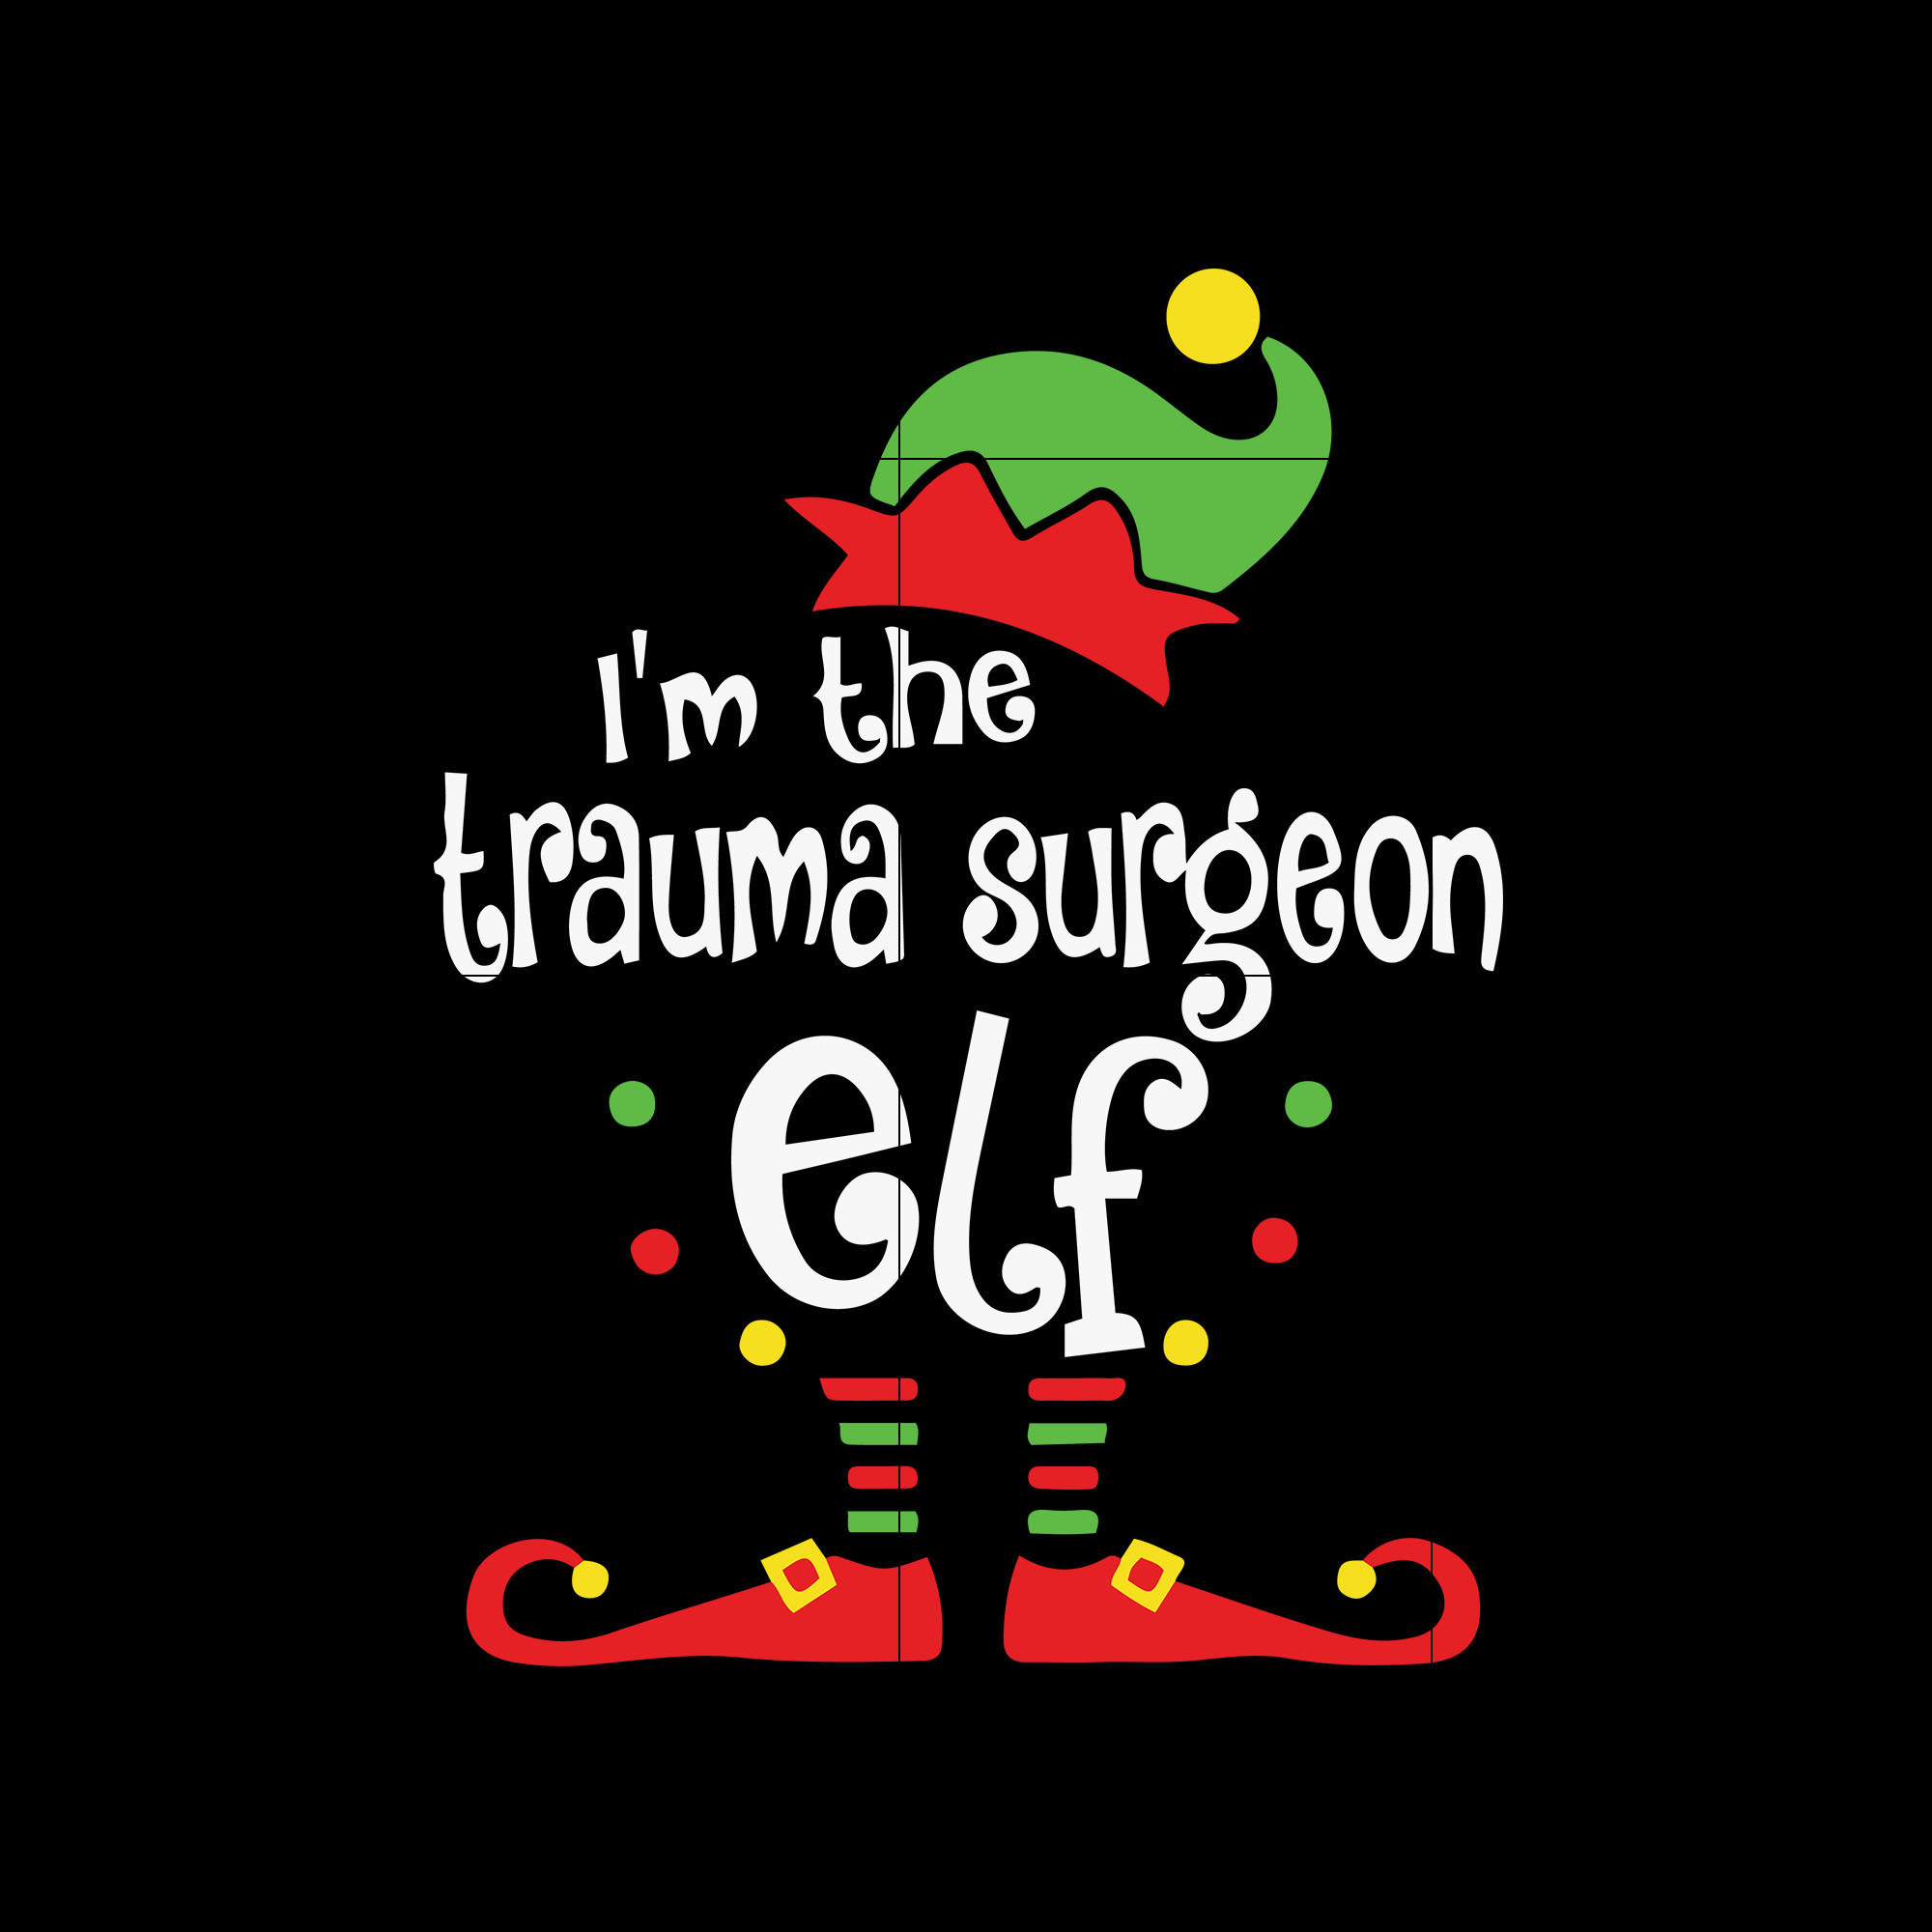 I M The Trauma Surgeon Elf Svg Christmas Svg By Earlstore On Zibbet